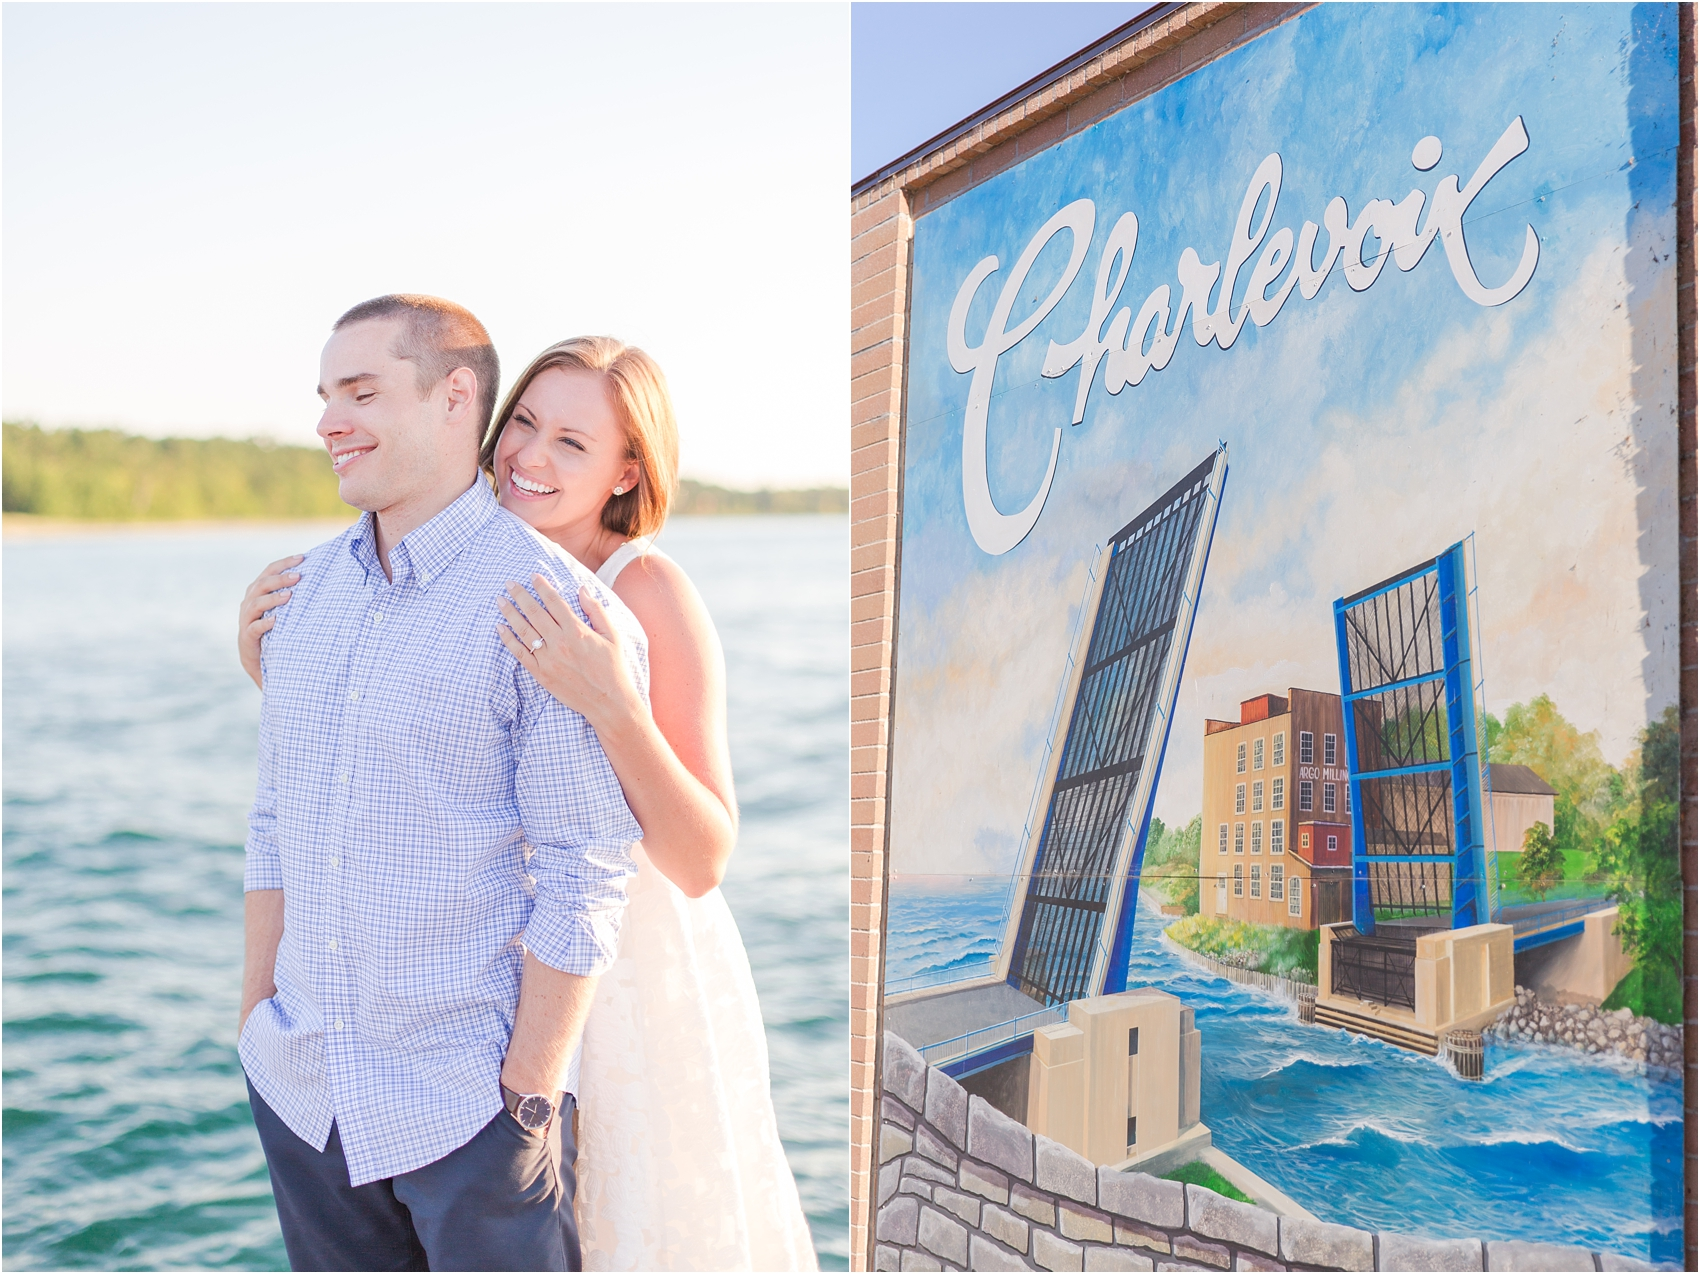 romantic-sunset-engagement-photos-in-downtown-charlevoix-mi-by-courtney-carolyn-photography_0002.jpg